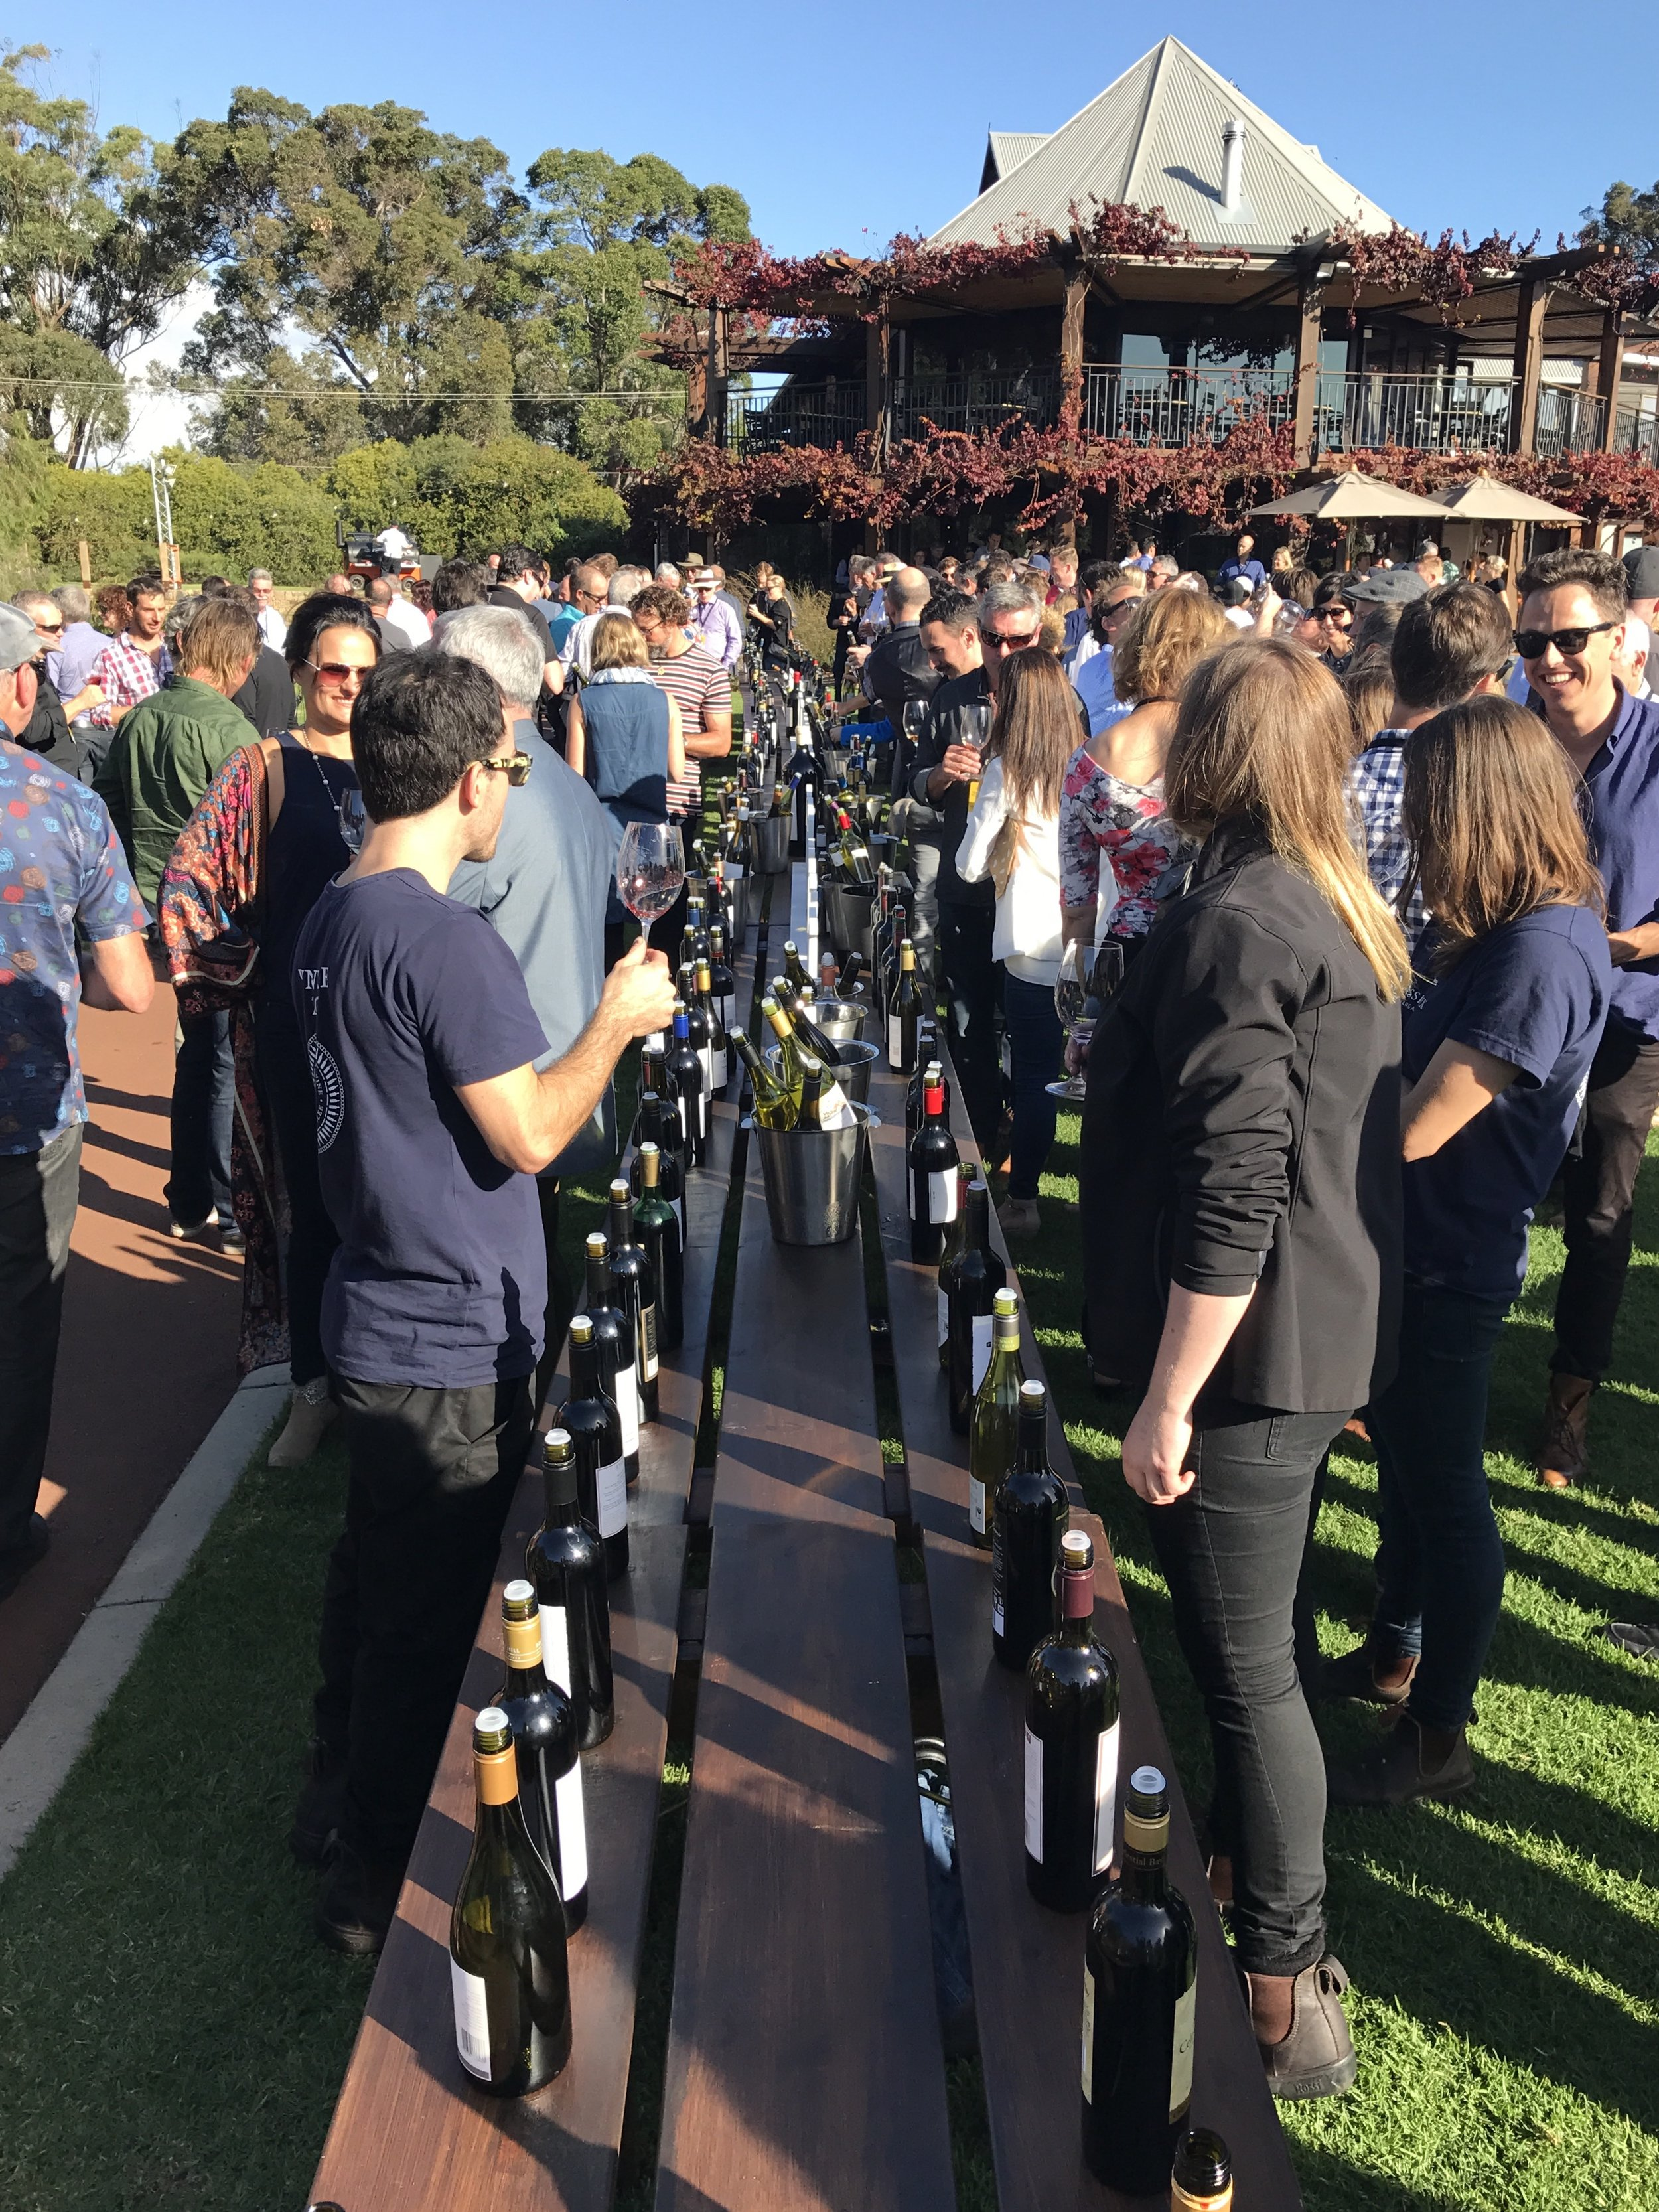 The view from here... straight down the line - this is what 350 wines from Margaret River's last 50 years looks like.